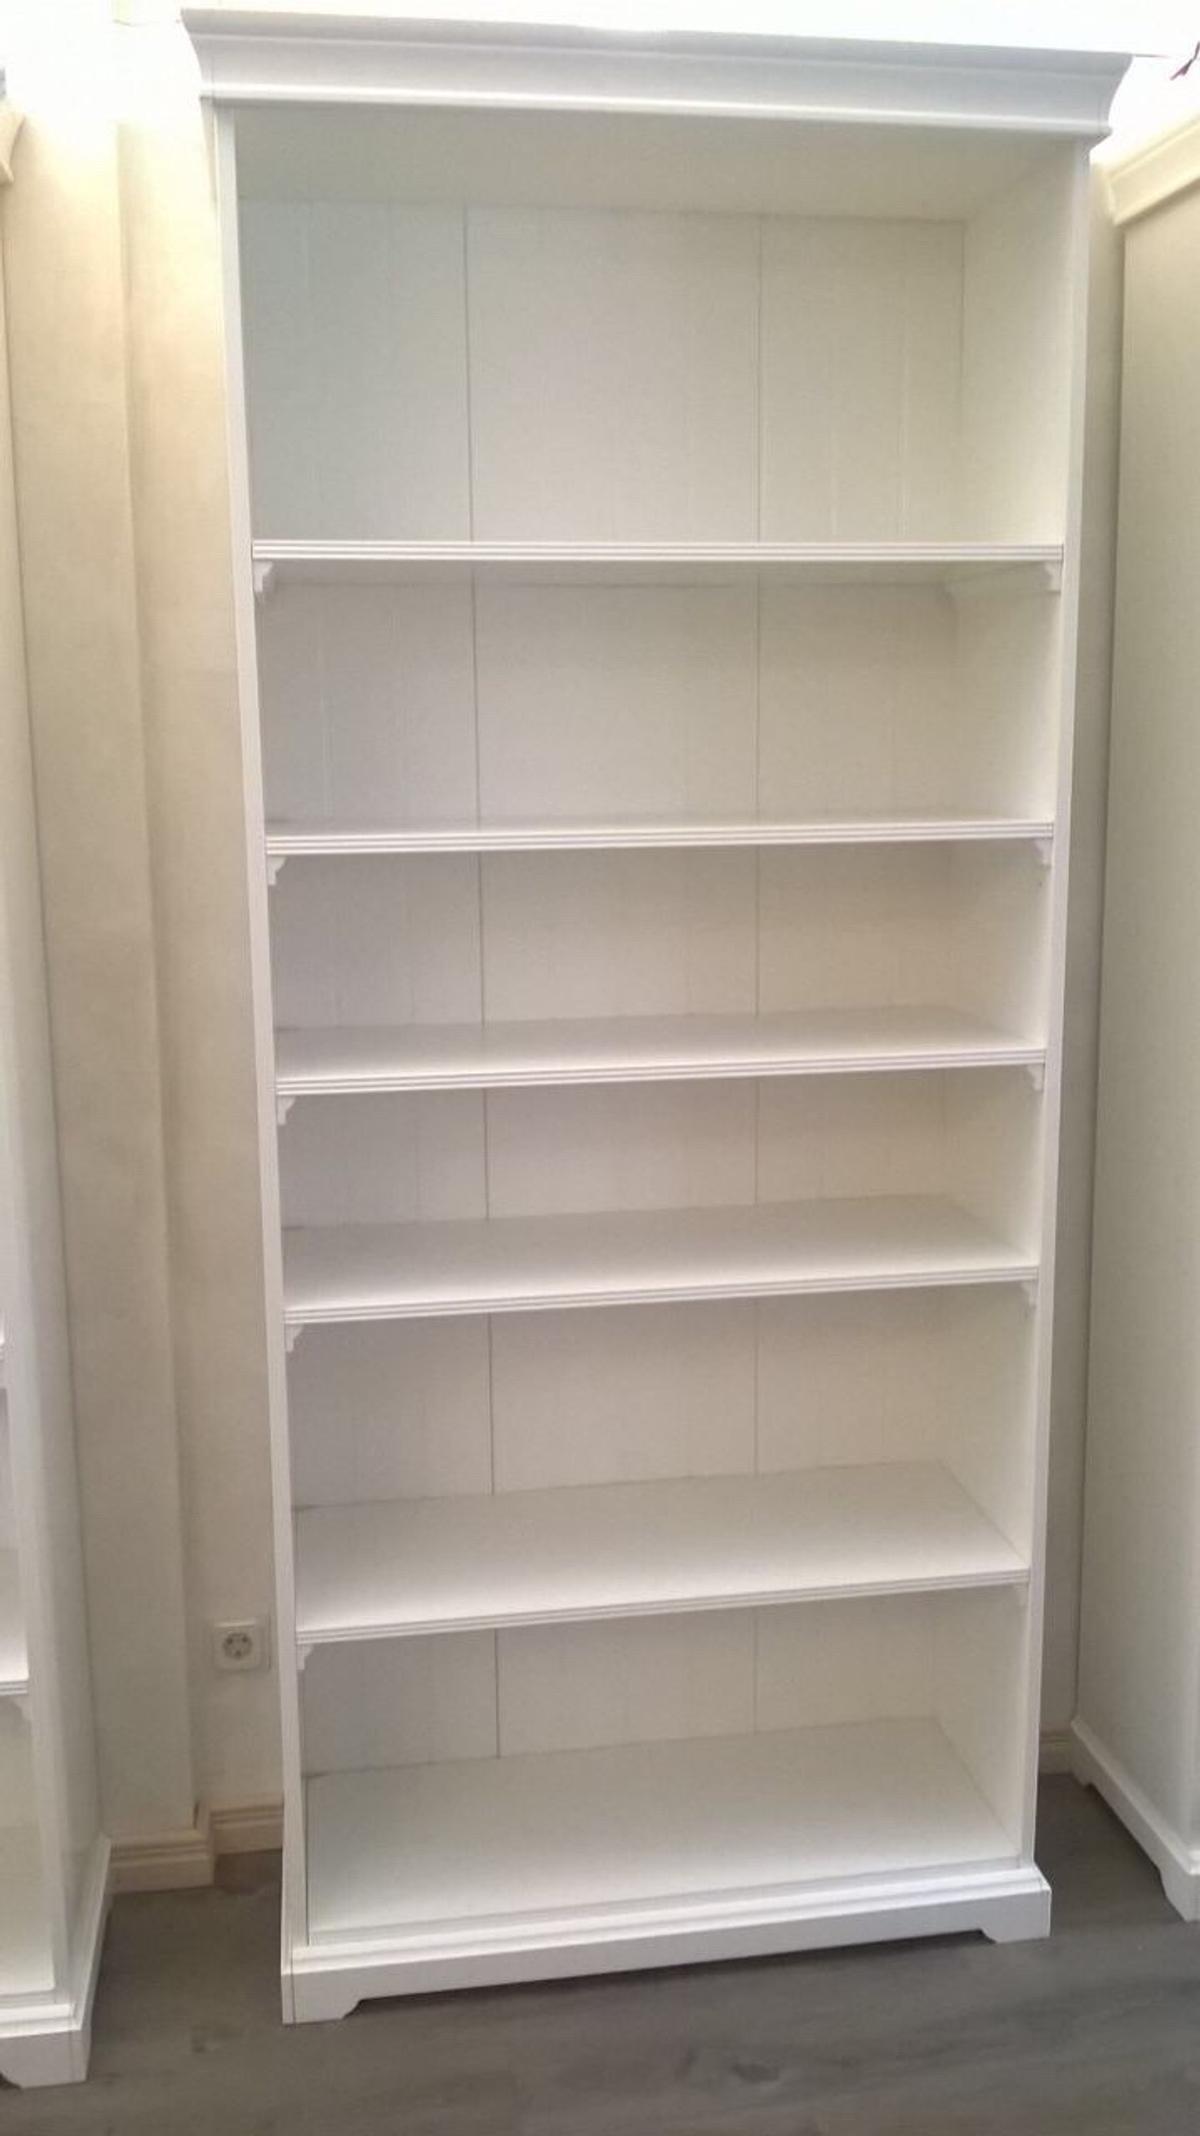 Ikea Liatorp Bucherregal In 99768 Harztor For 50 00 For Sale Shpock